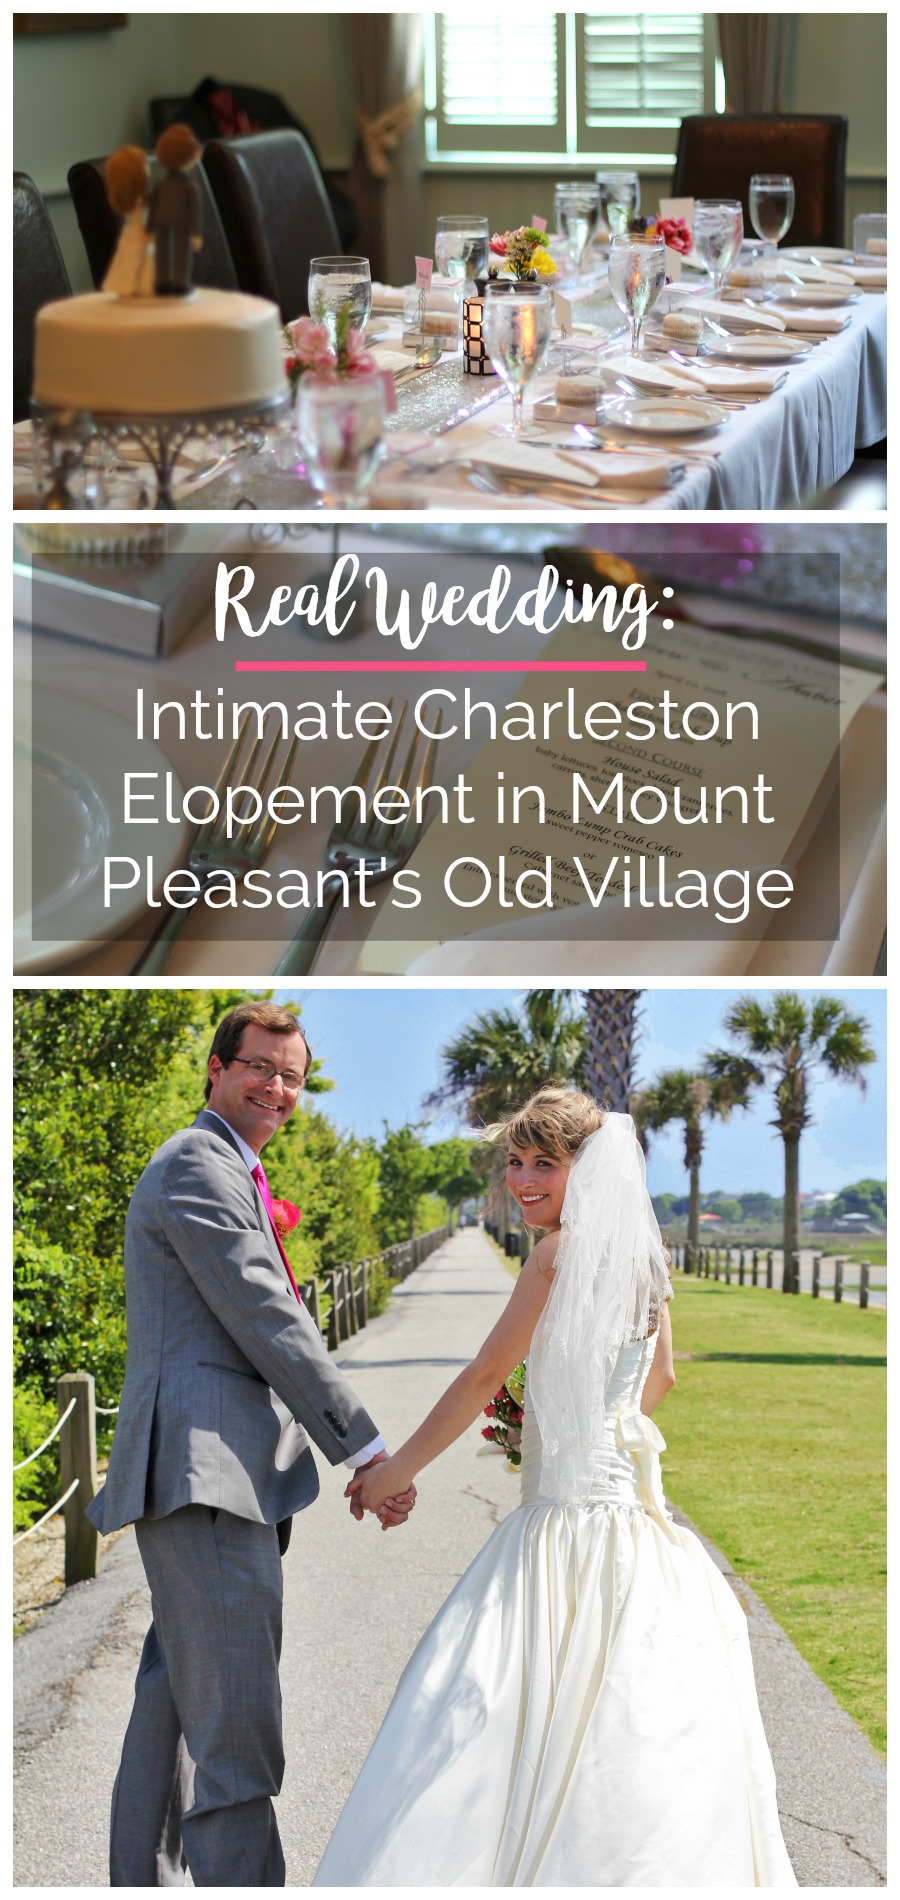 Intimate Charleston Elopement in Mount Pleasant's Old Village | Palmetto State Weddings